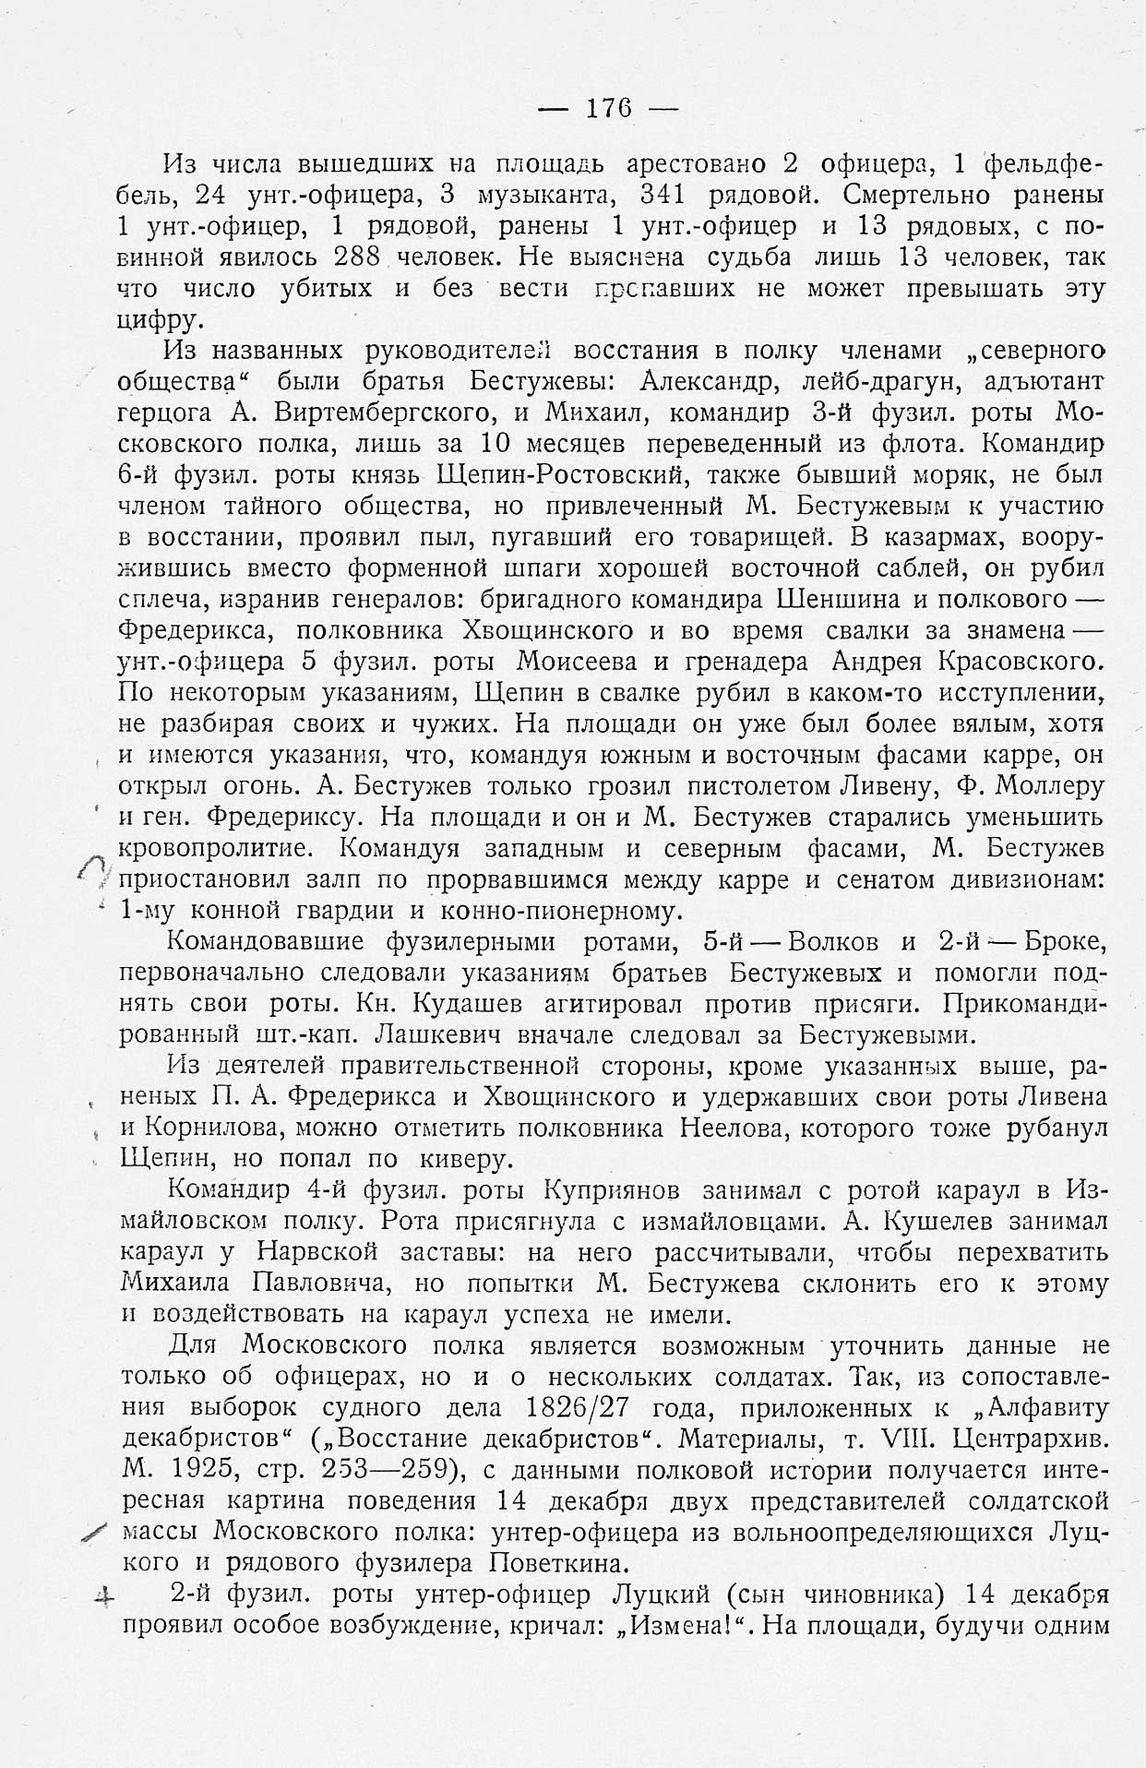 http://elib.shpl.ru/pages/566073/zooms/7